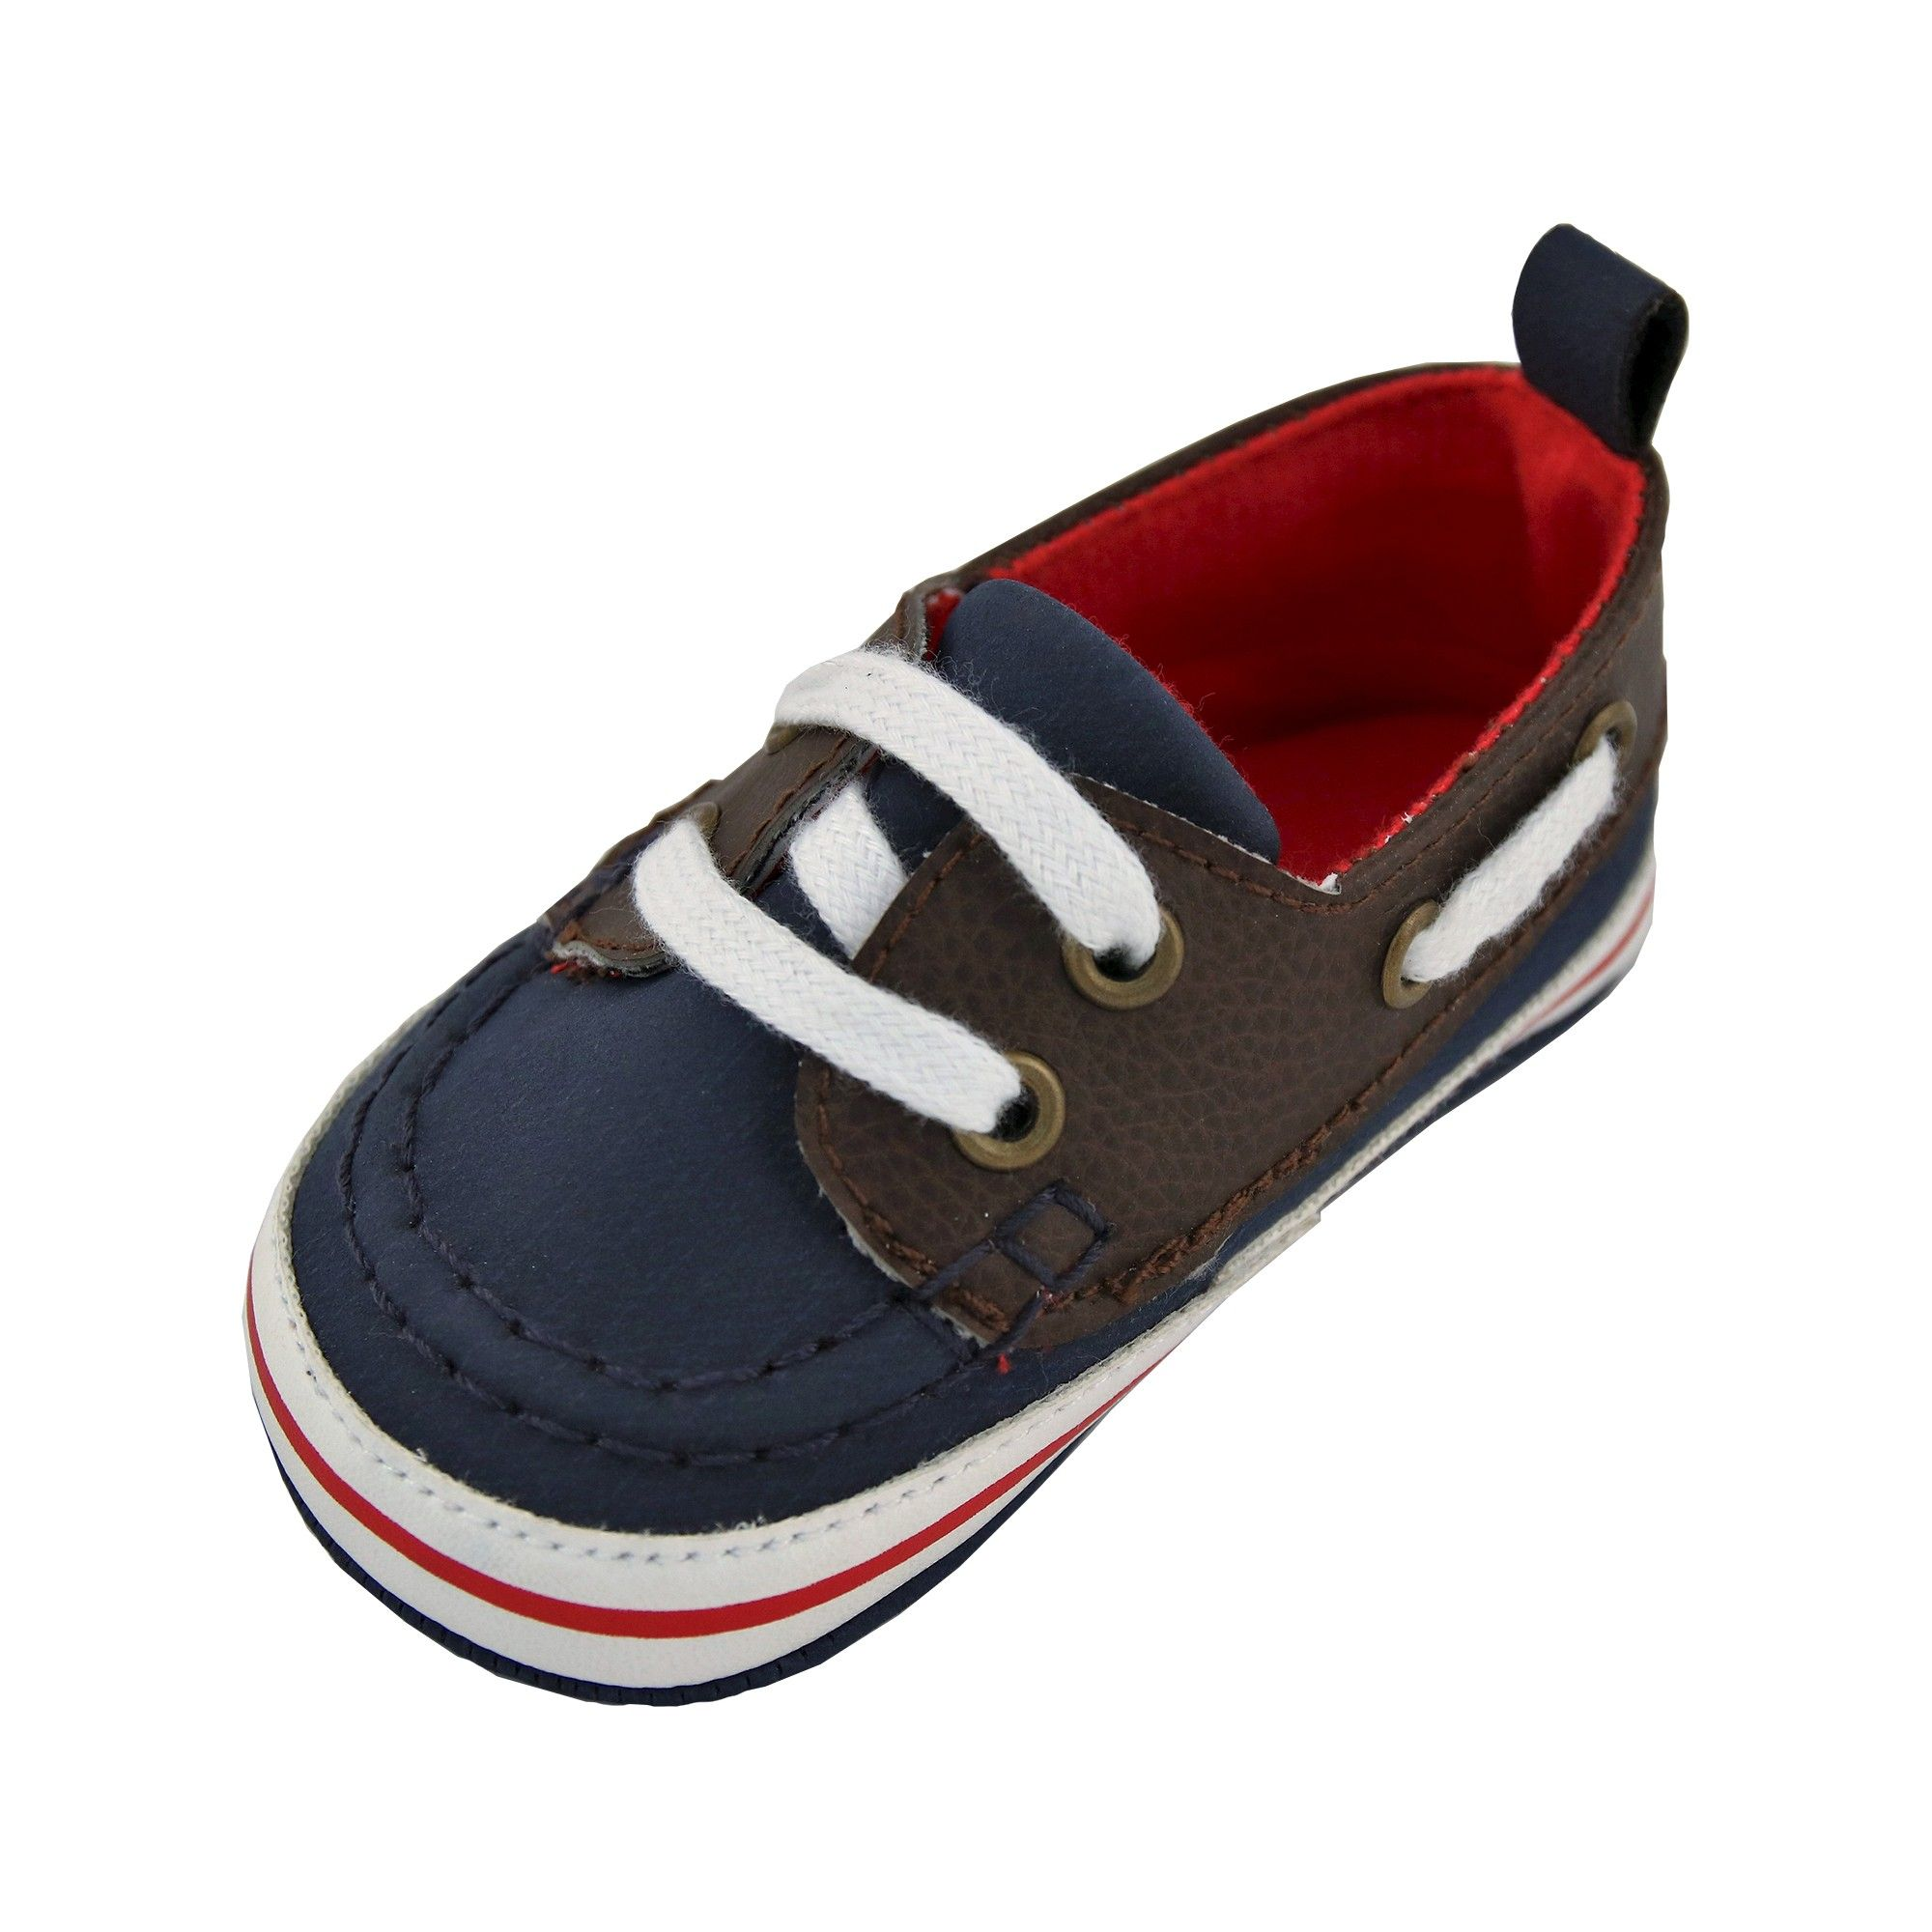 Baby Boys Rising Star Boat Shoe Crib Shoes Navy 3 6M Size 3 6 M